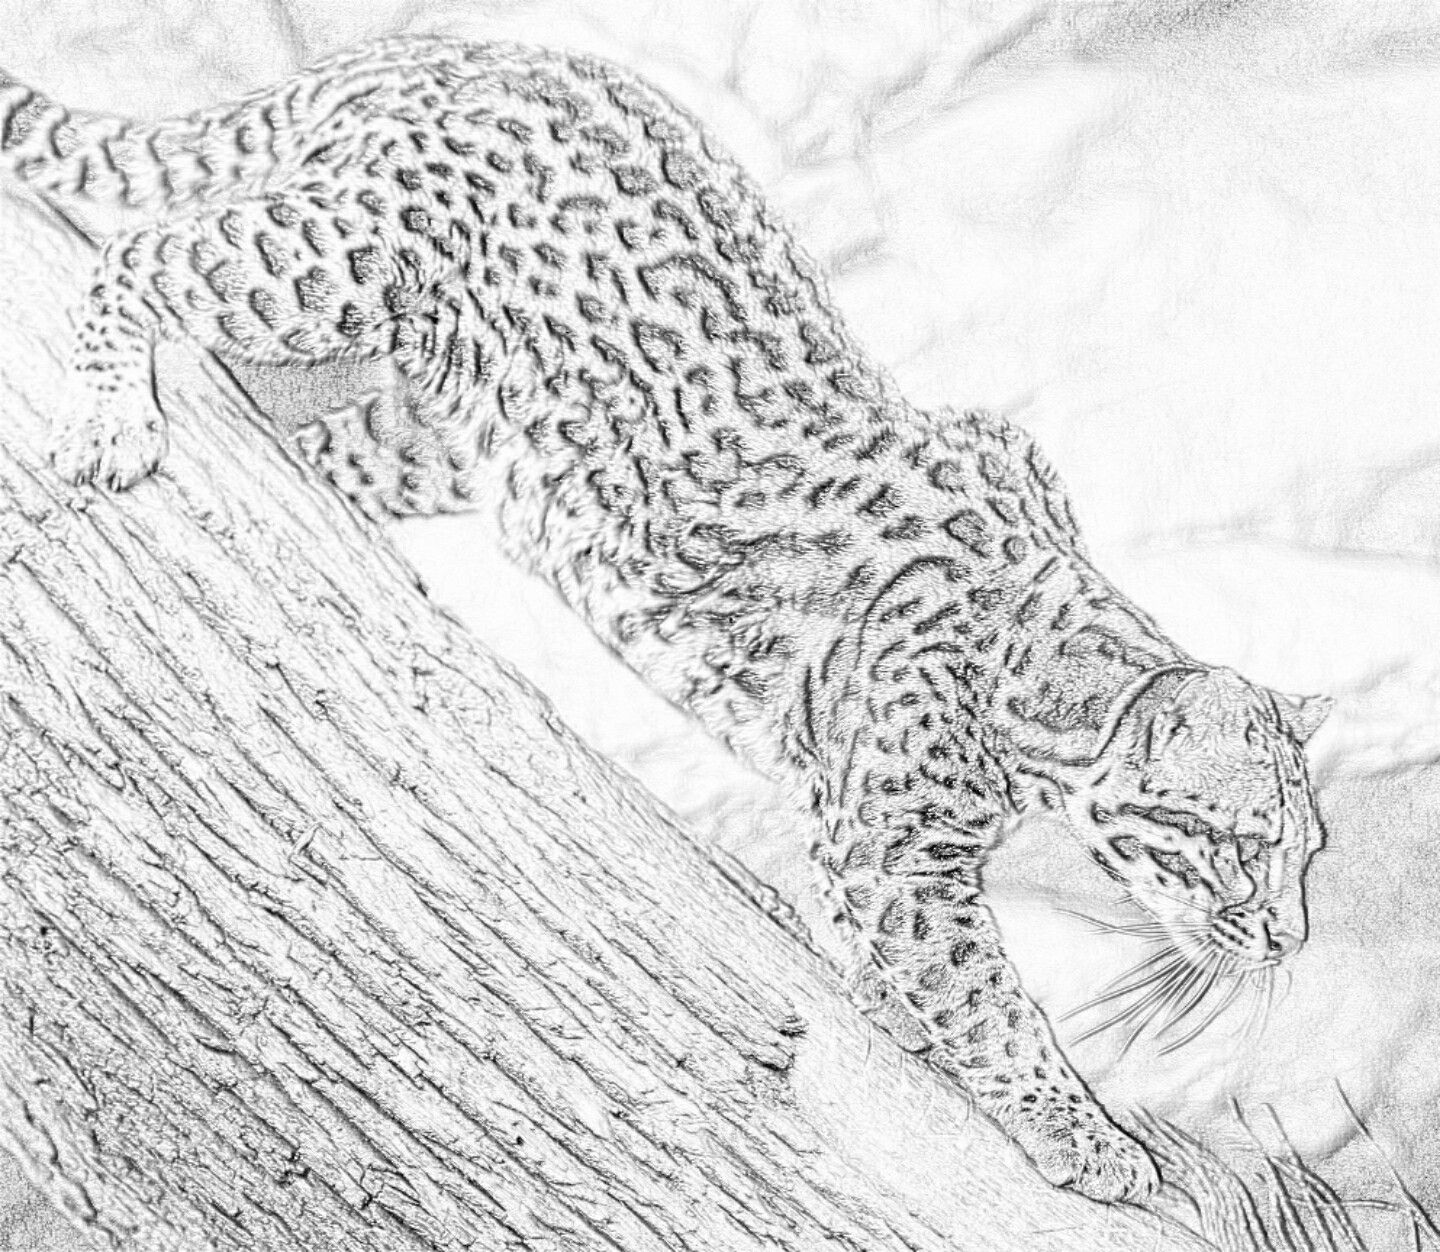 Ocelot in black and white animal pictures in black and white